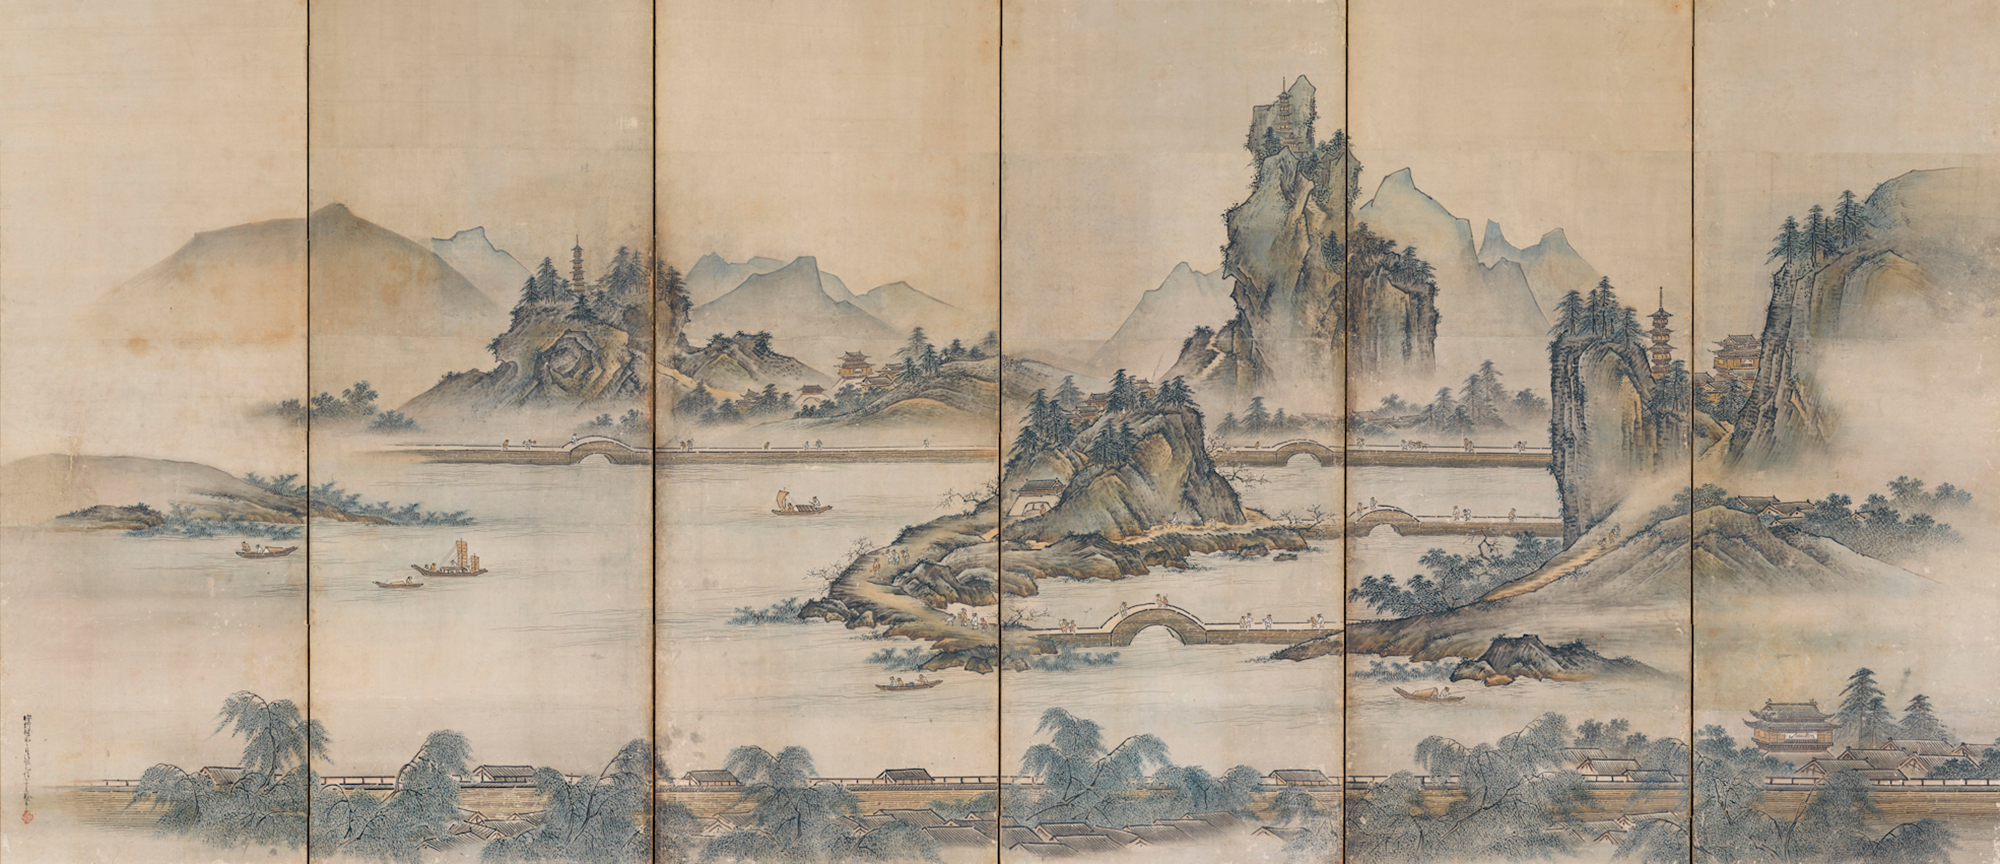 Admiration for Landscapes ― Meishō Hakkei, Eight Scenic Views